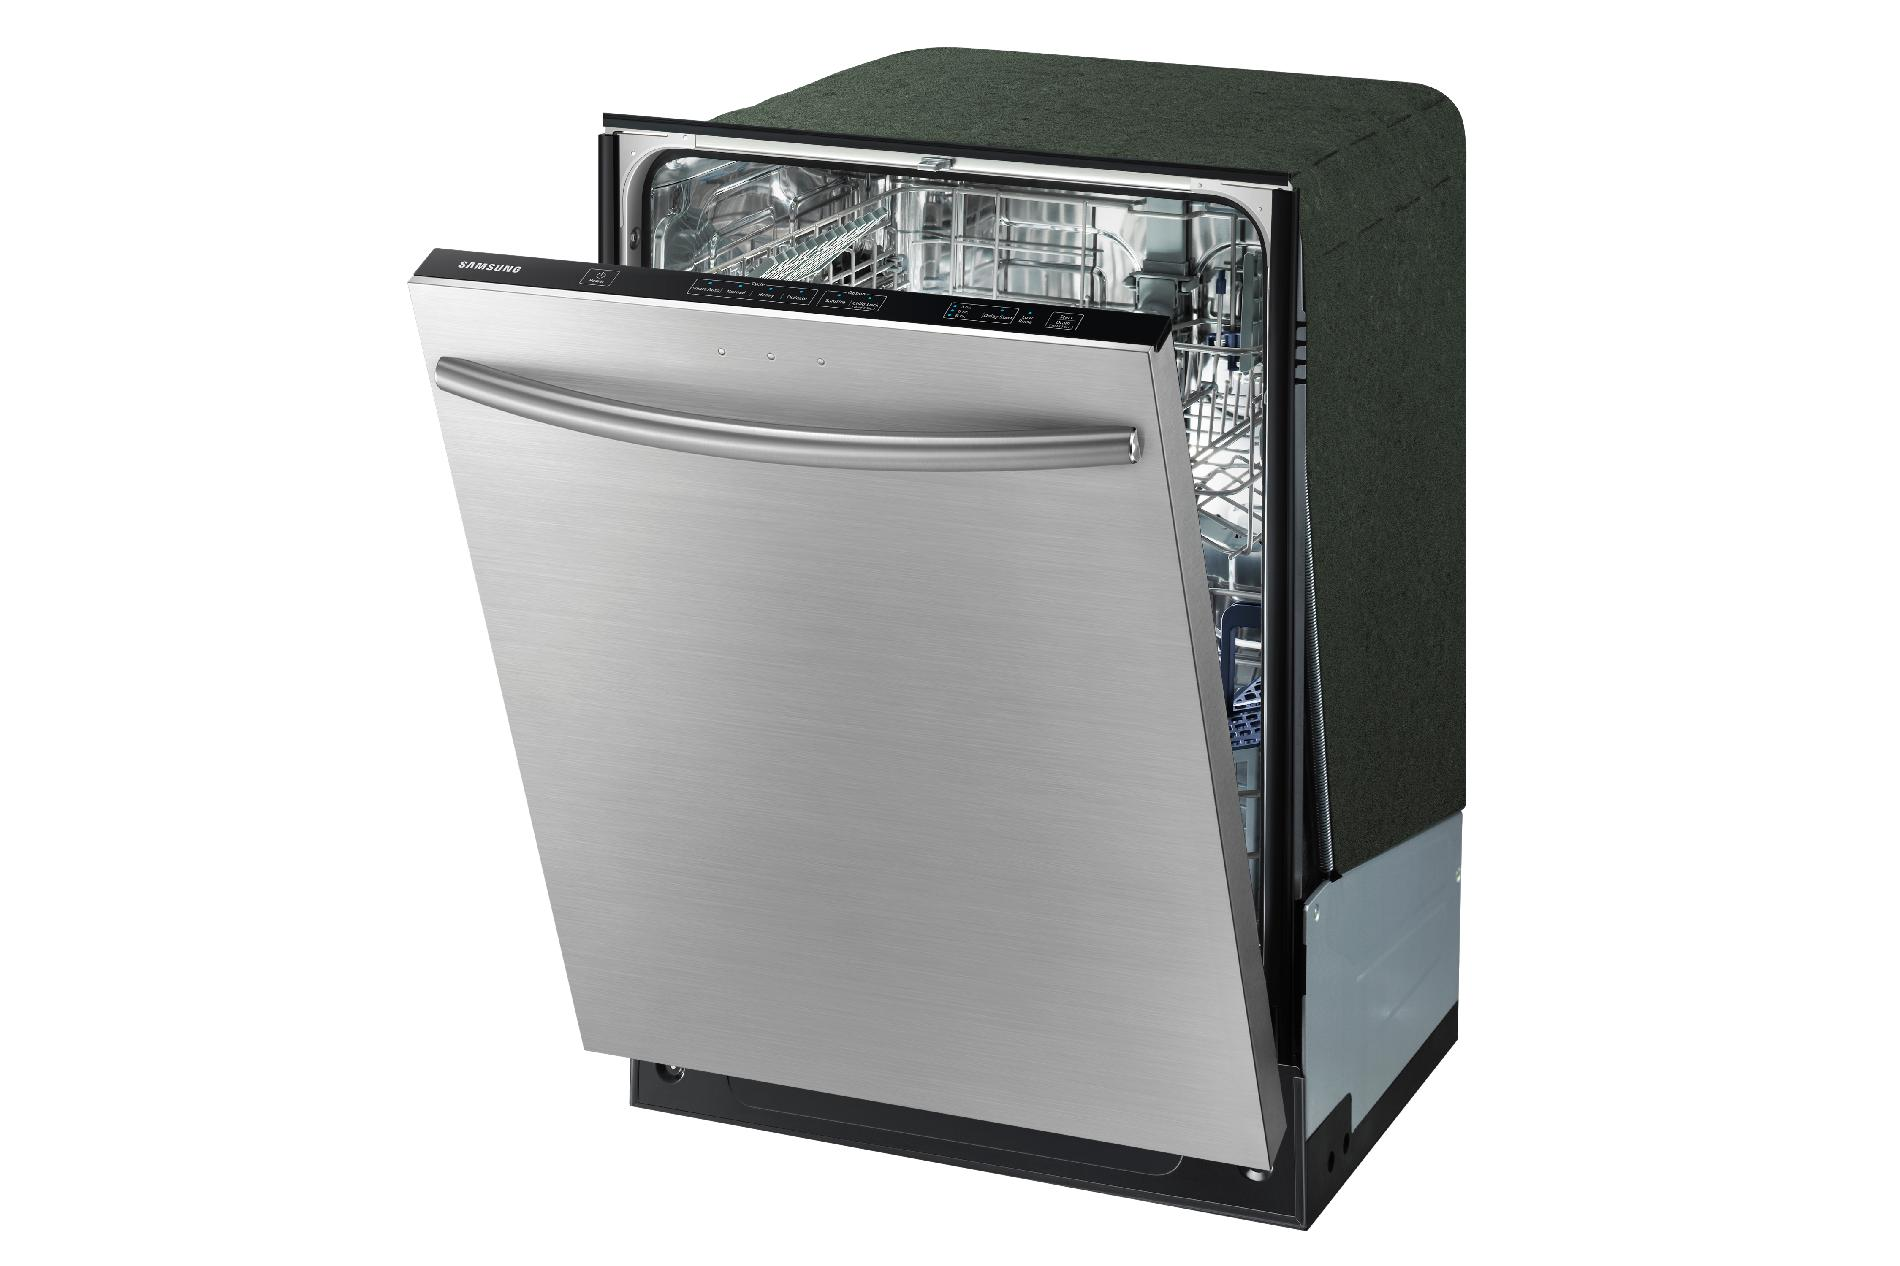 """Samsung 24"""" Built-In Dishwasher w/ Stainless Steel Tub - Stainless Steel"""